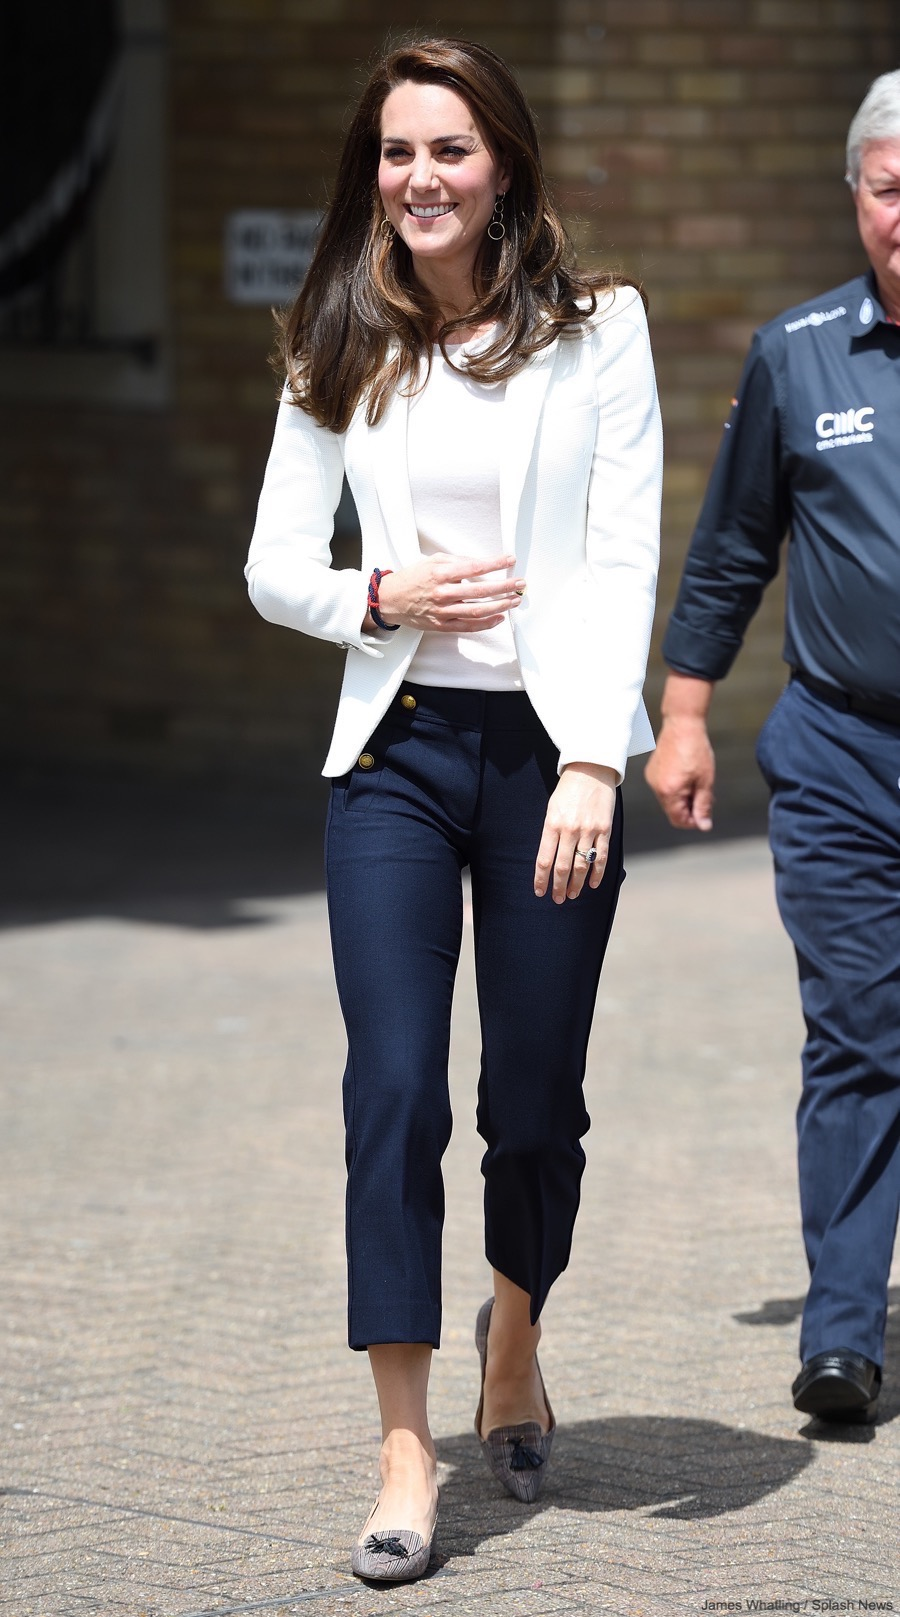 Kate Middleton wearing JCrew pants and a white Zara blazer to the 1851 Trust Roadshow